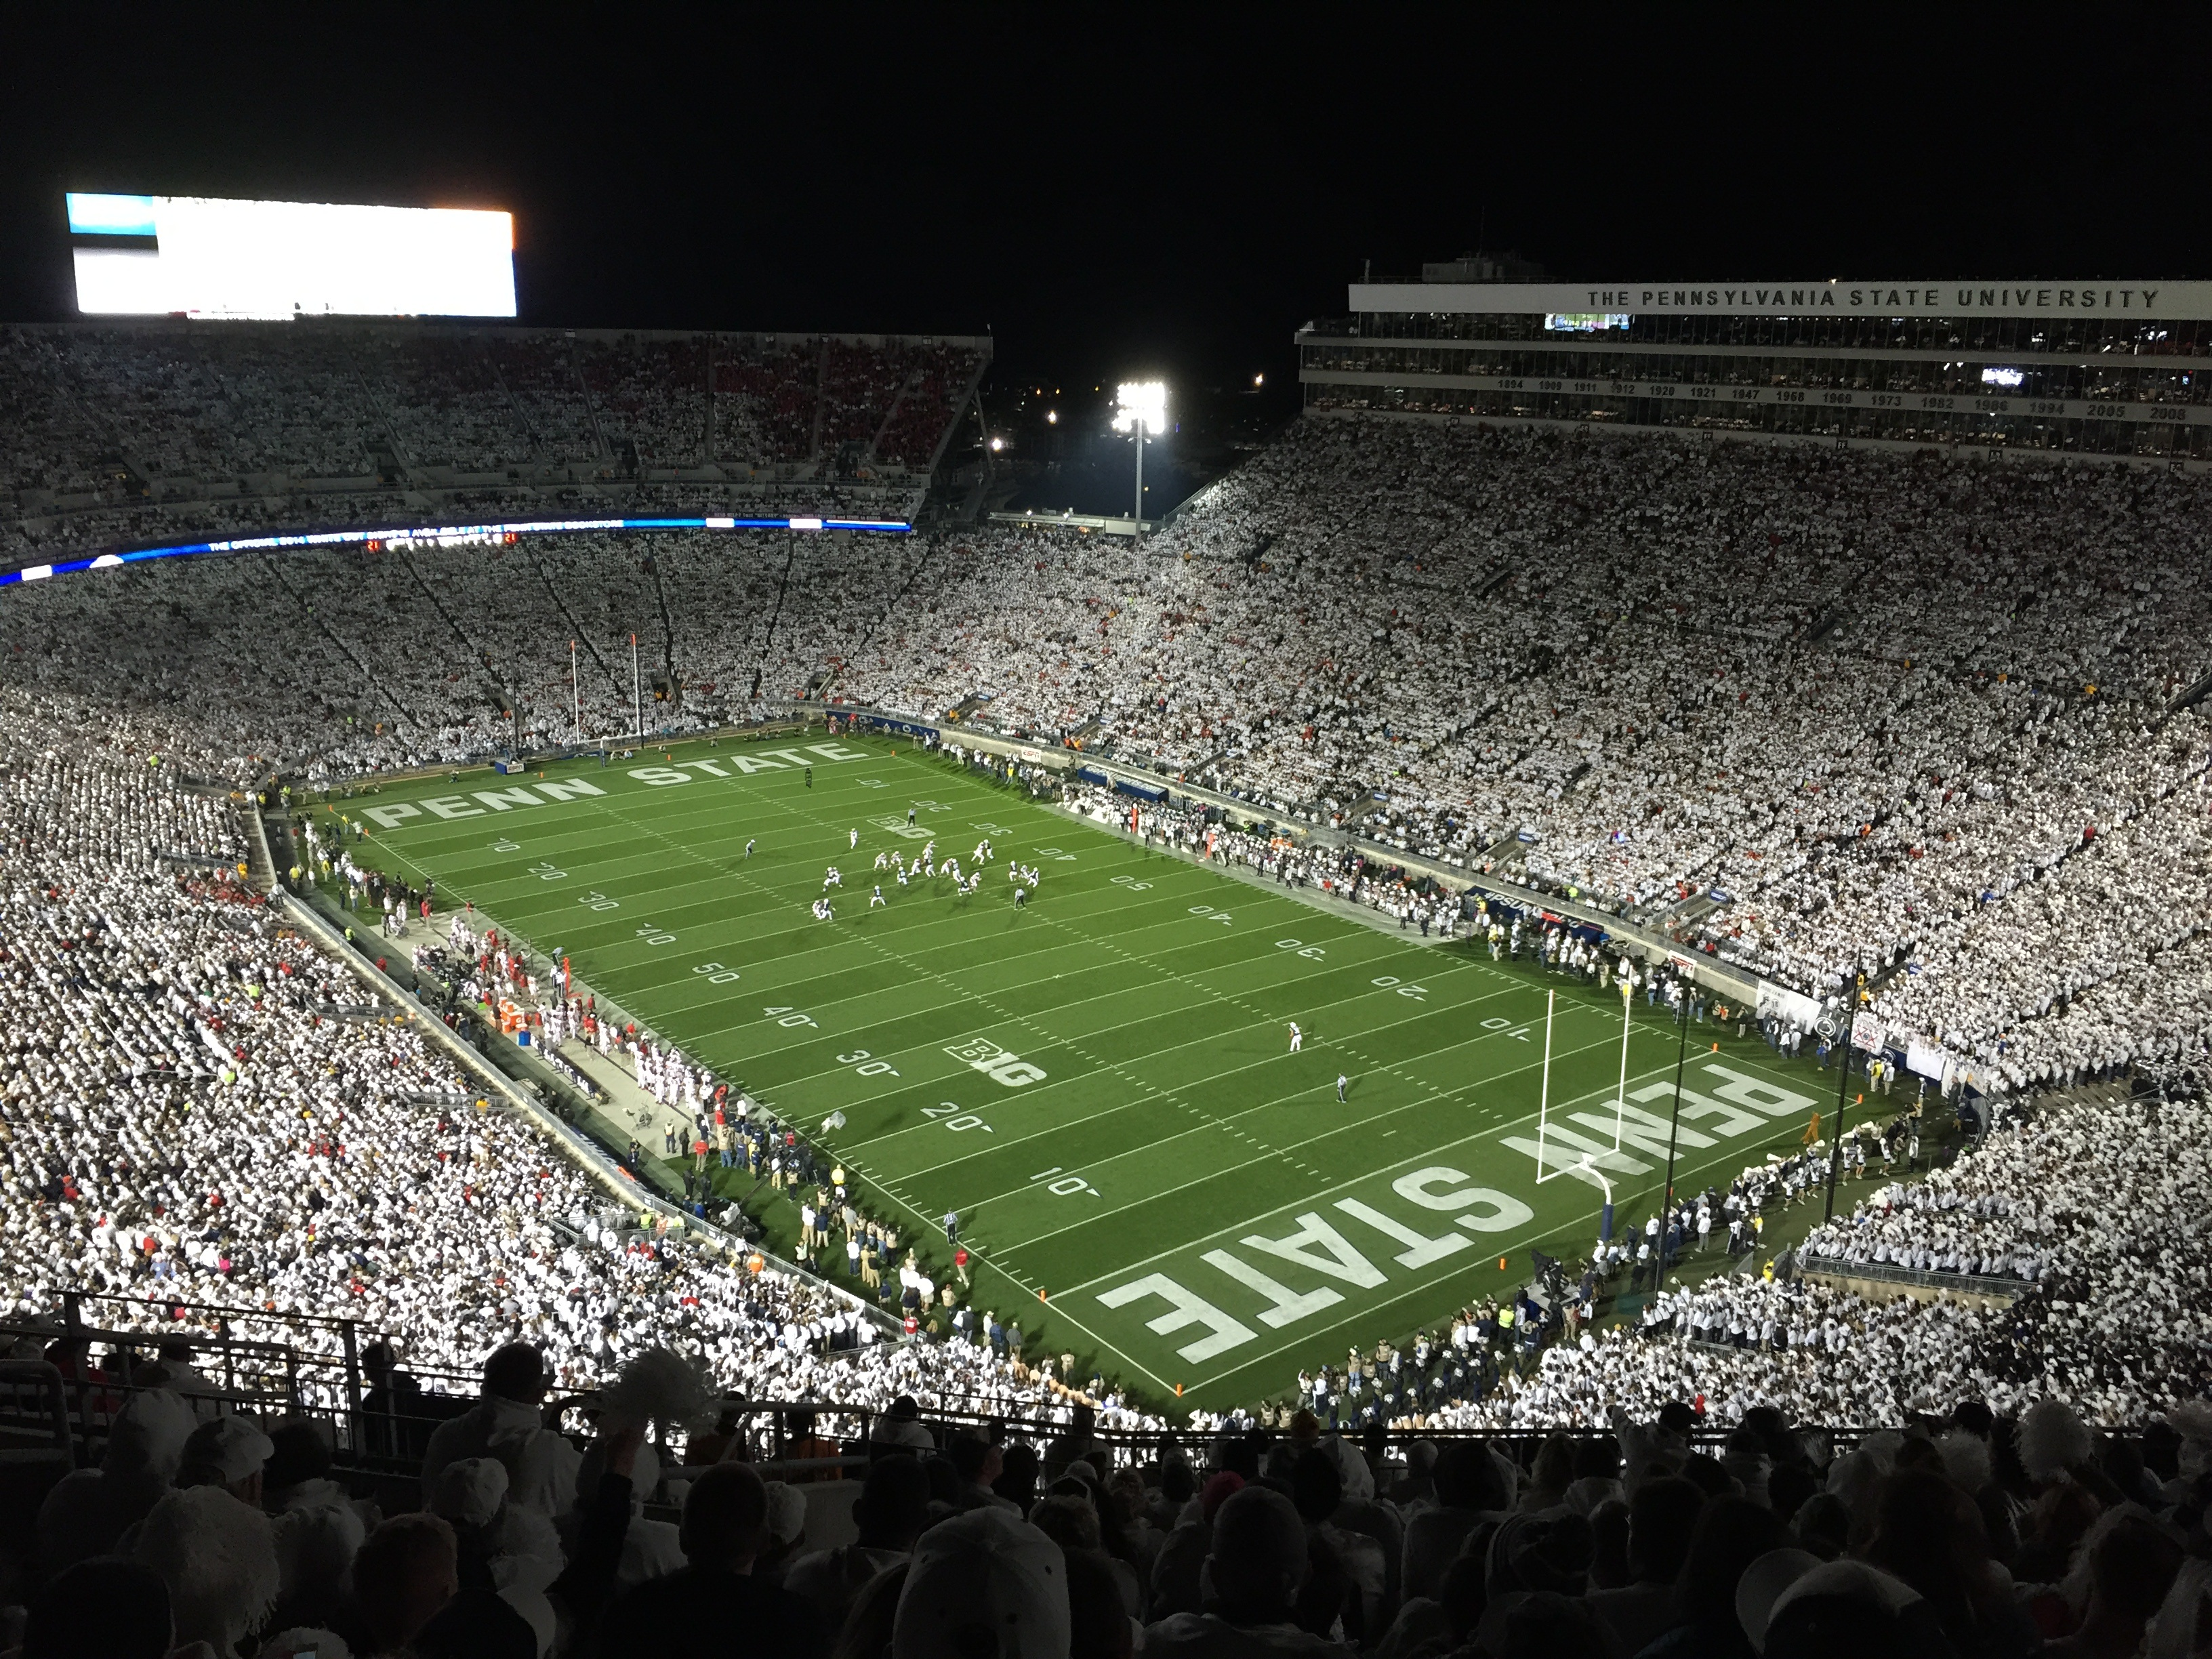 Black Wallpaper Iphone 6 Free Stock Photo Of Crowd Football Penn State